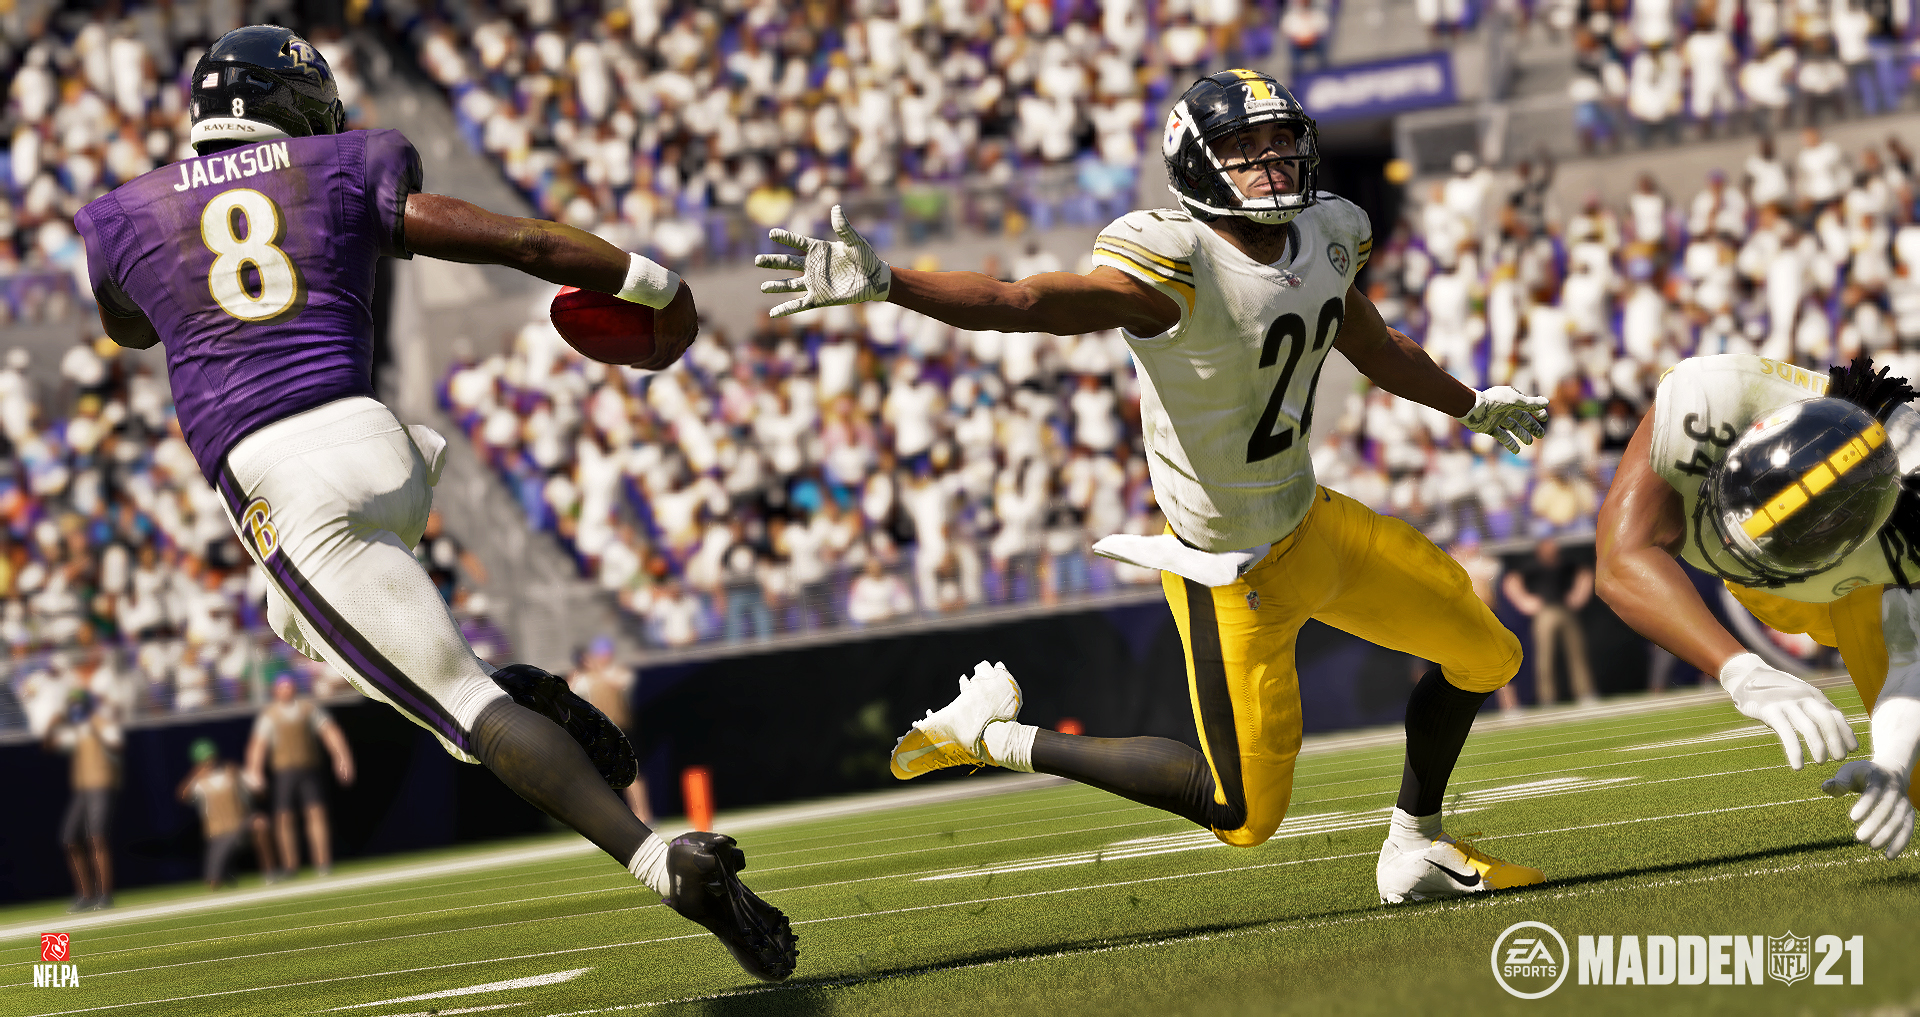 """EA Showoffs The New """"Complete Control"""" Mechanics In 'Madden NFL 21'"""